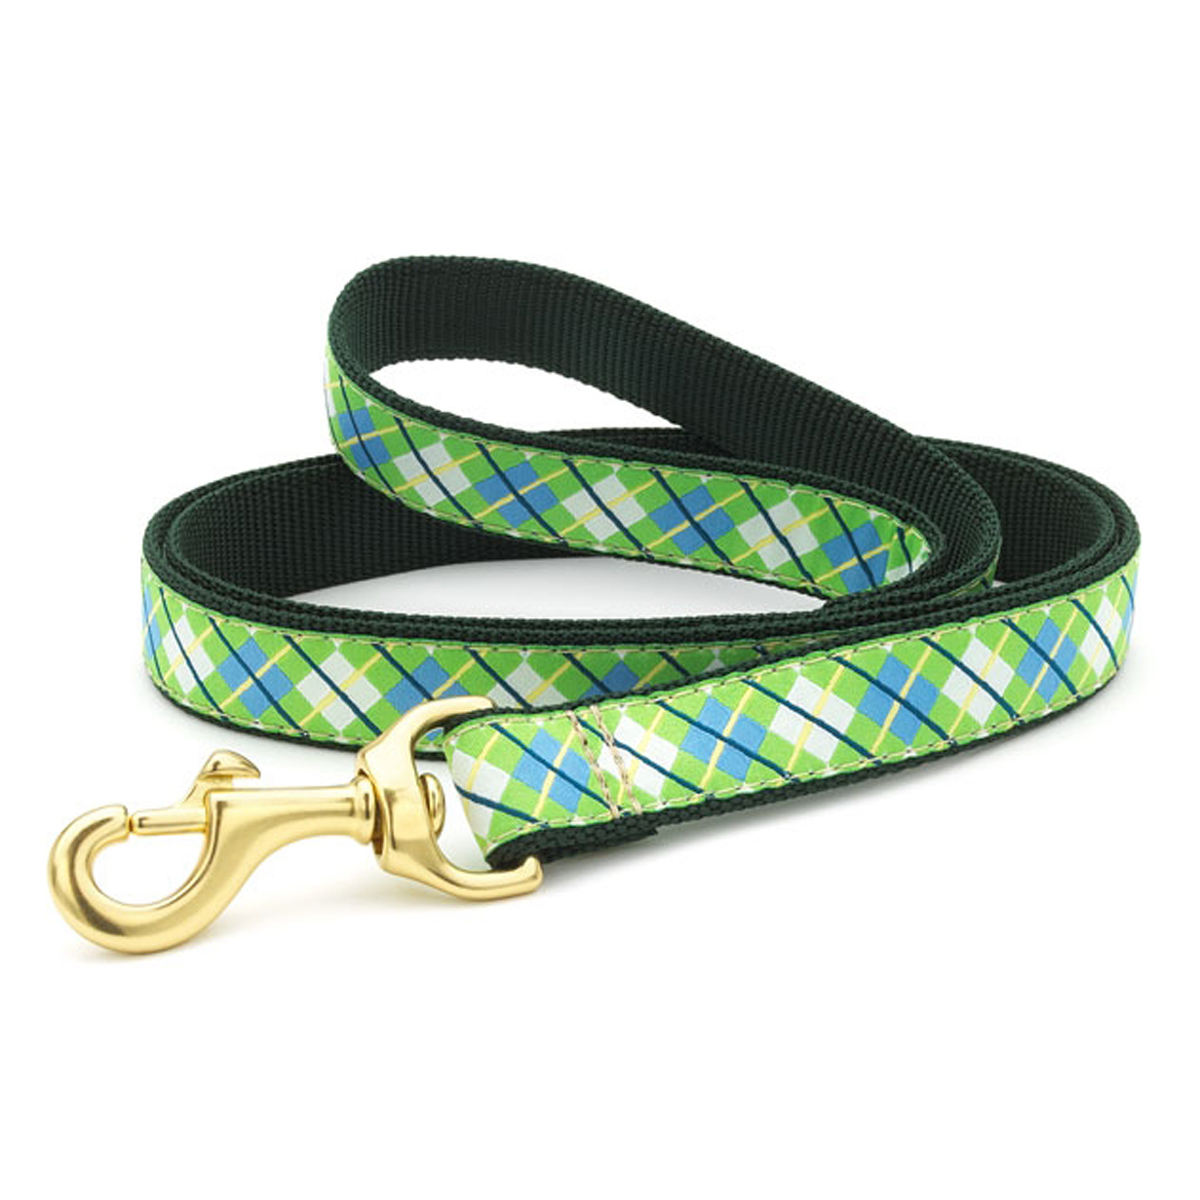 Argyle Dog Leash by Up Country - Blue & Green